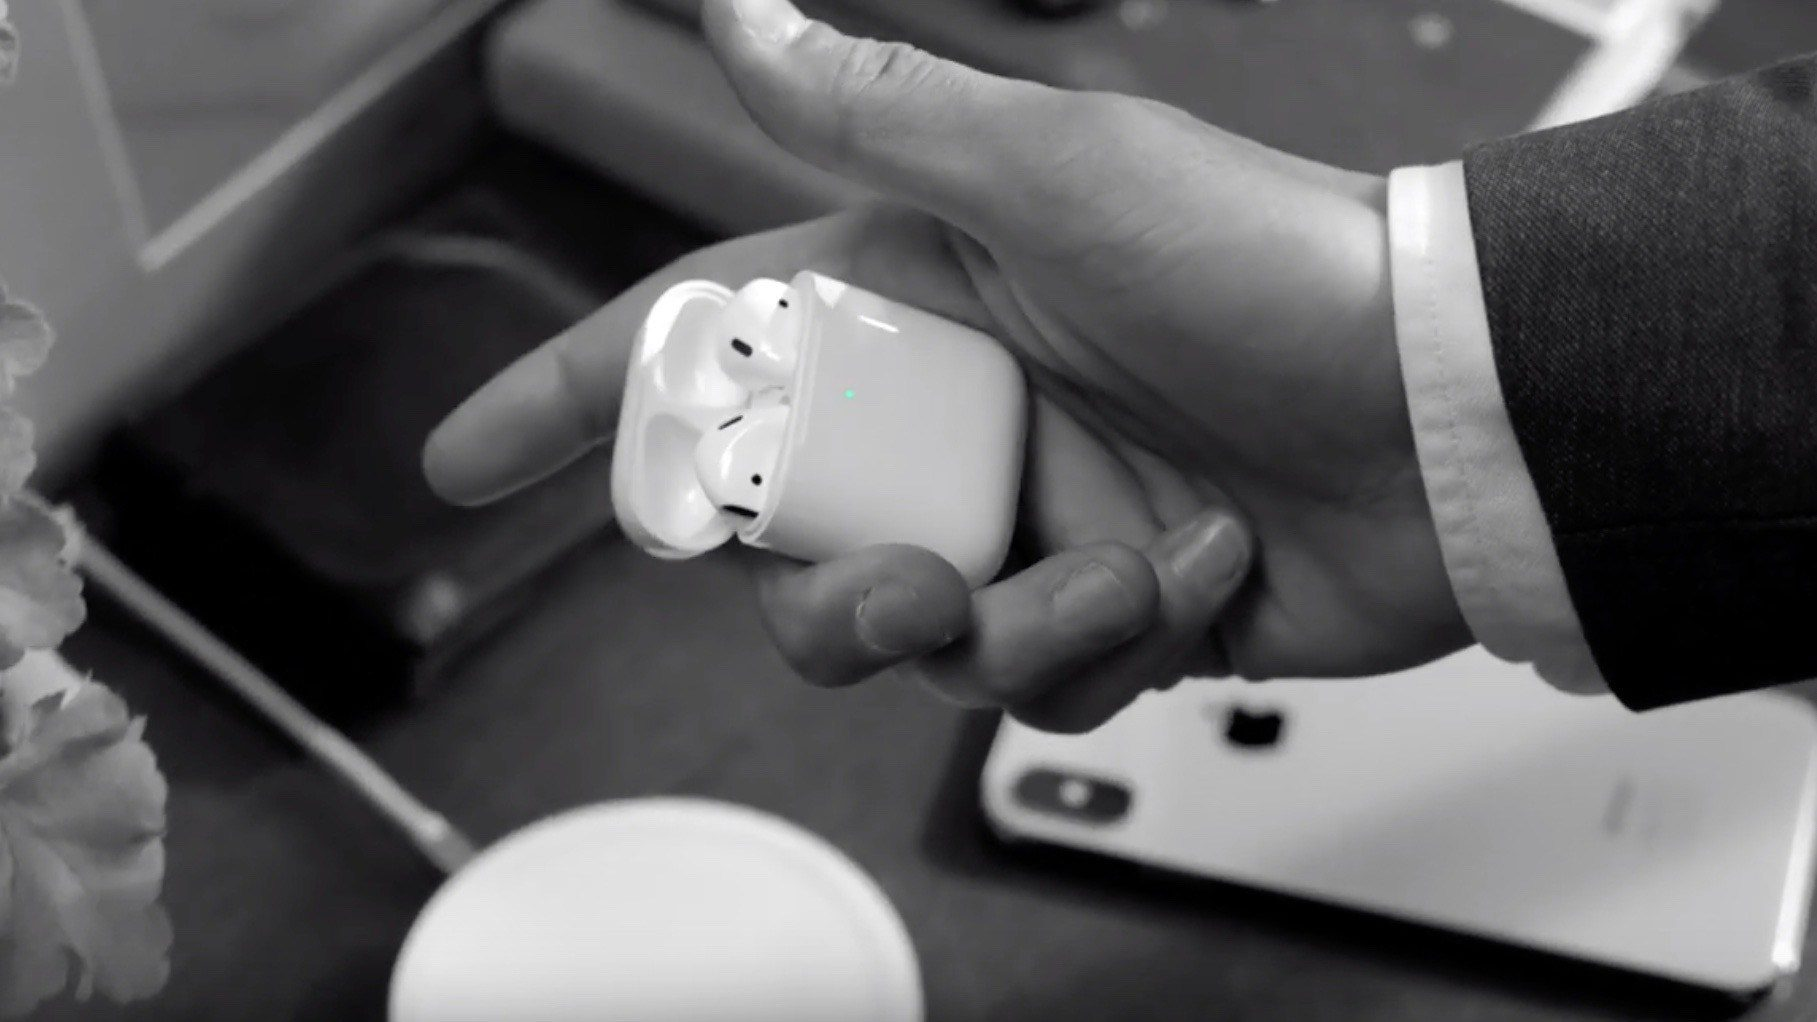 Apple Touts Versatility of AirPods with Wireless Charging